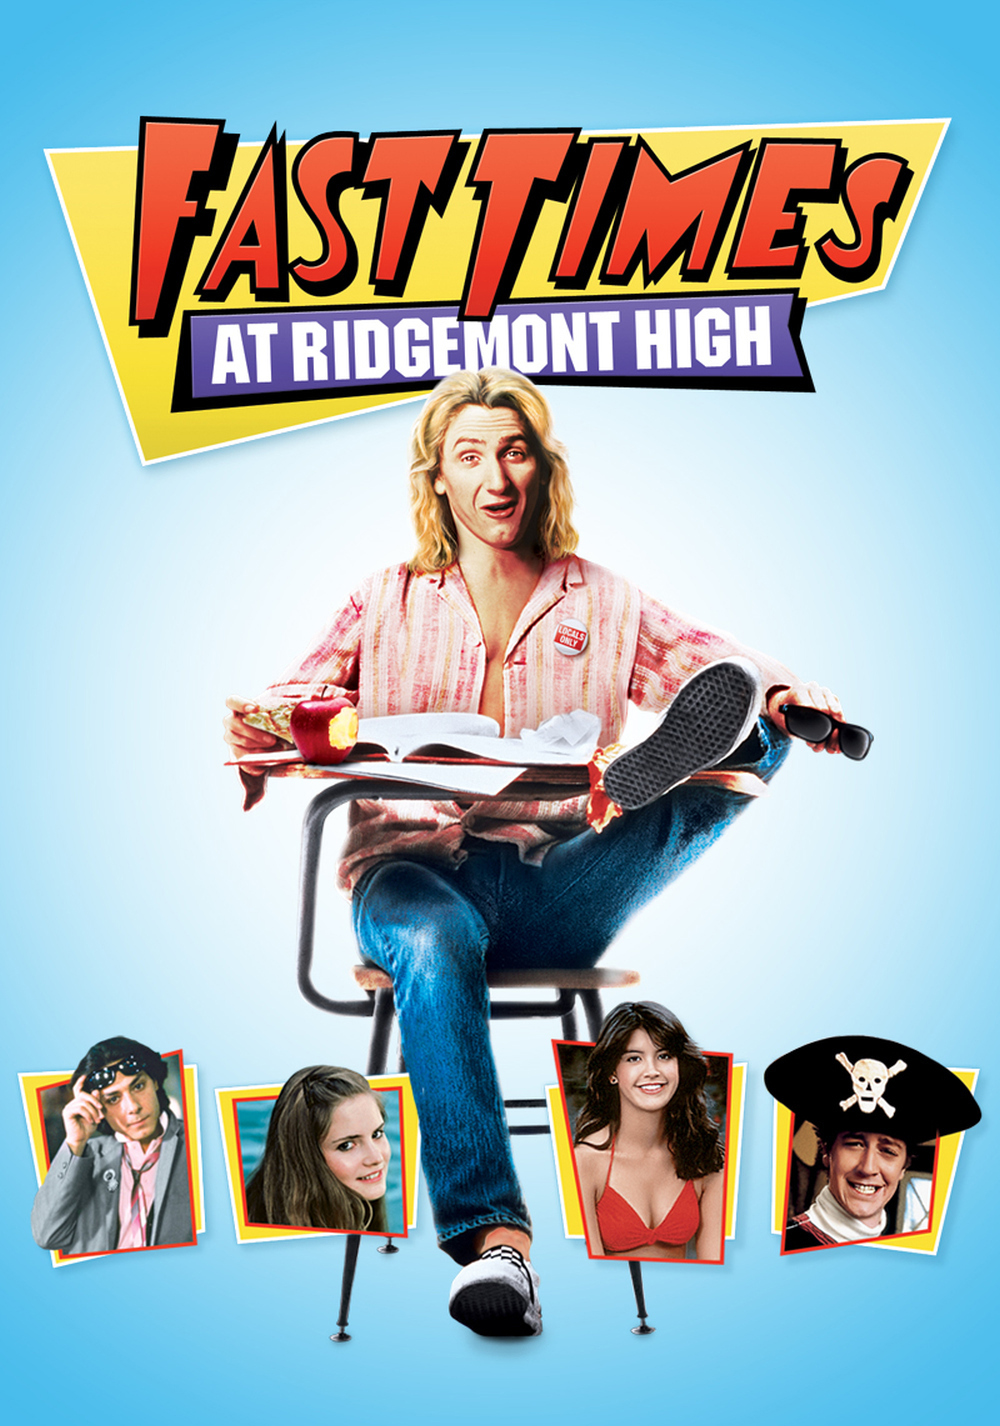 Join SCADFILM for Fast Times at Ridgemont High  SCADedu